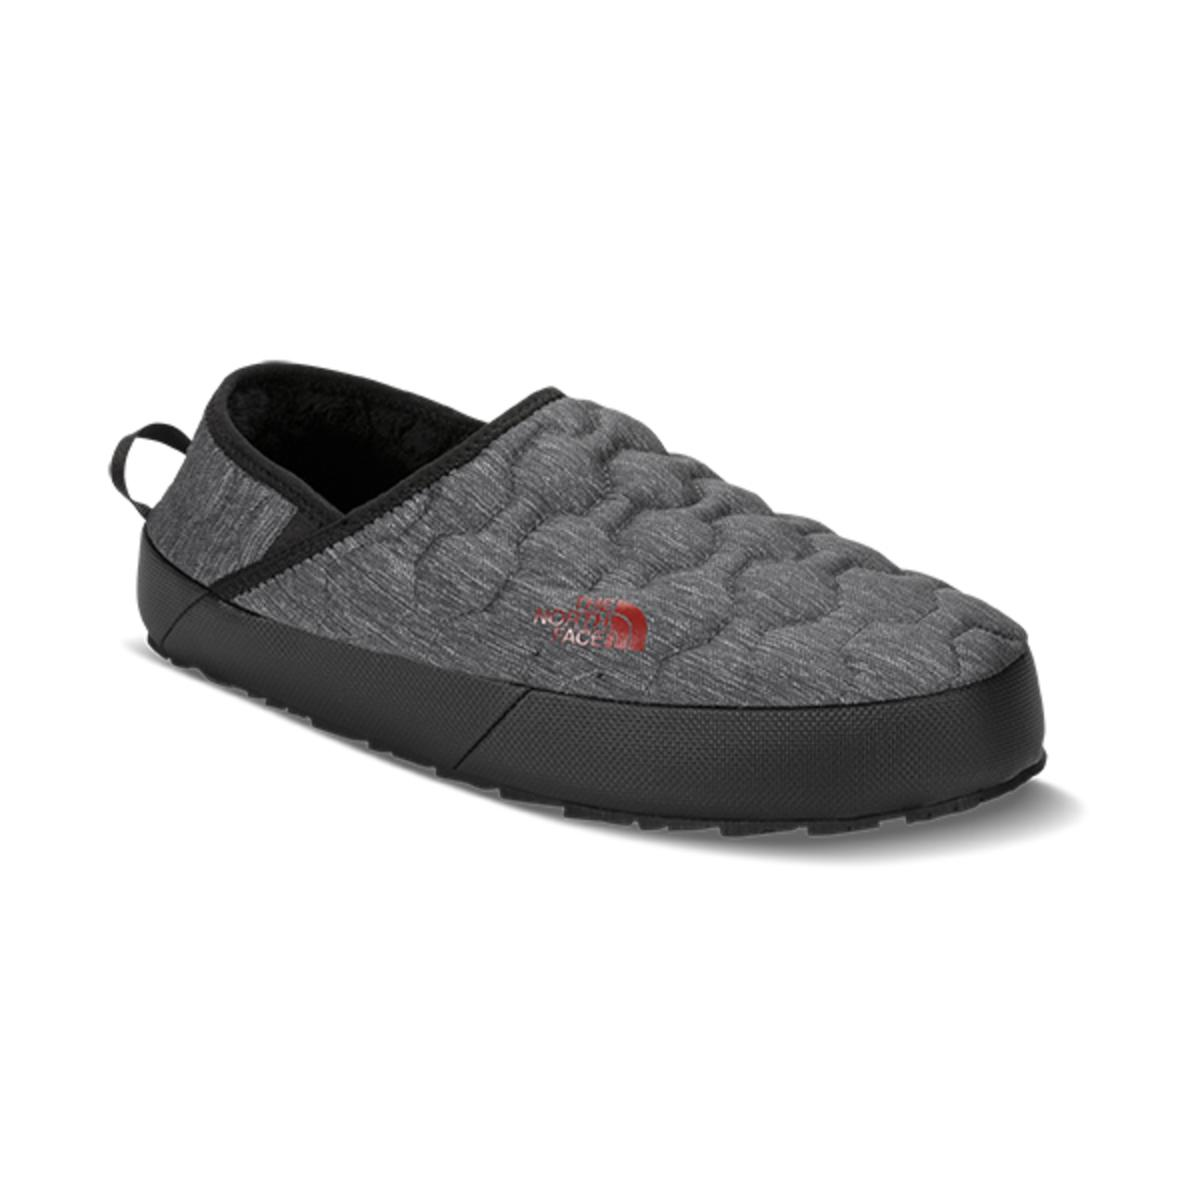 43308459ddd The North Face Men s Thermoball Traction Mule IV Shoes - The Warming ...